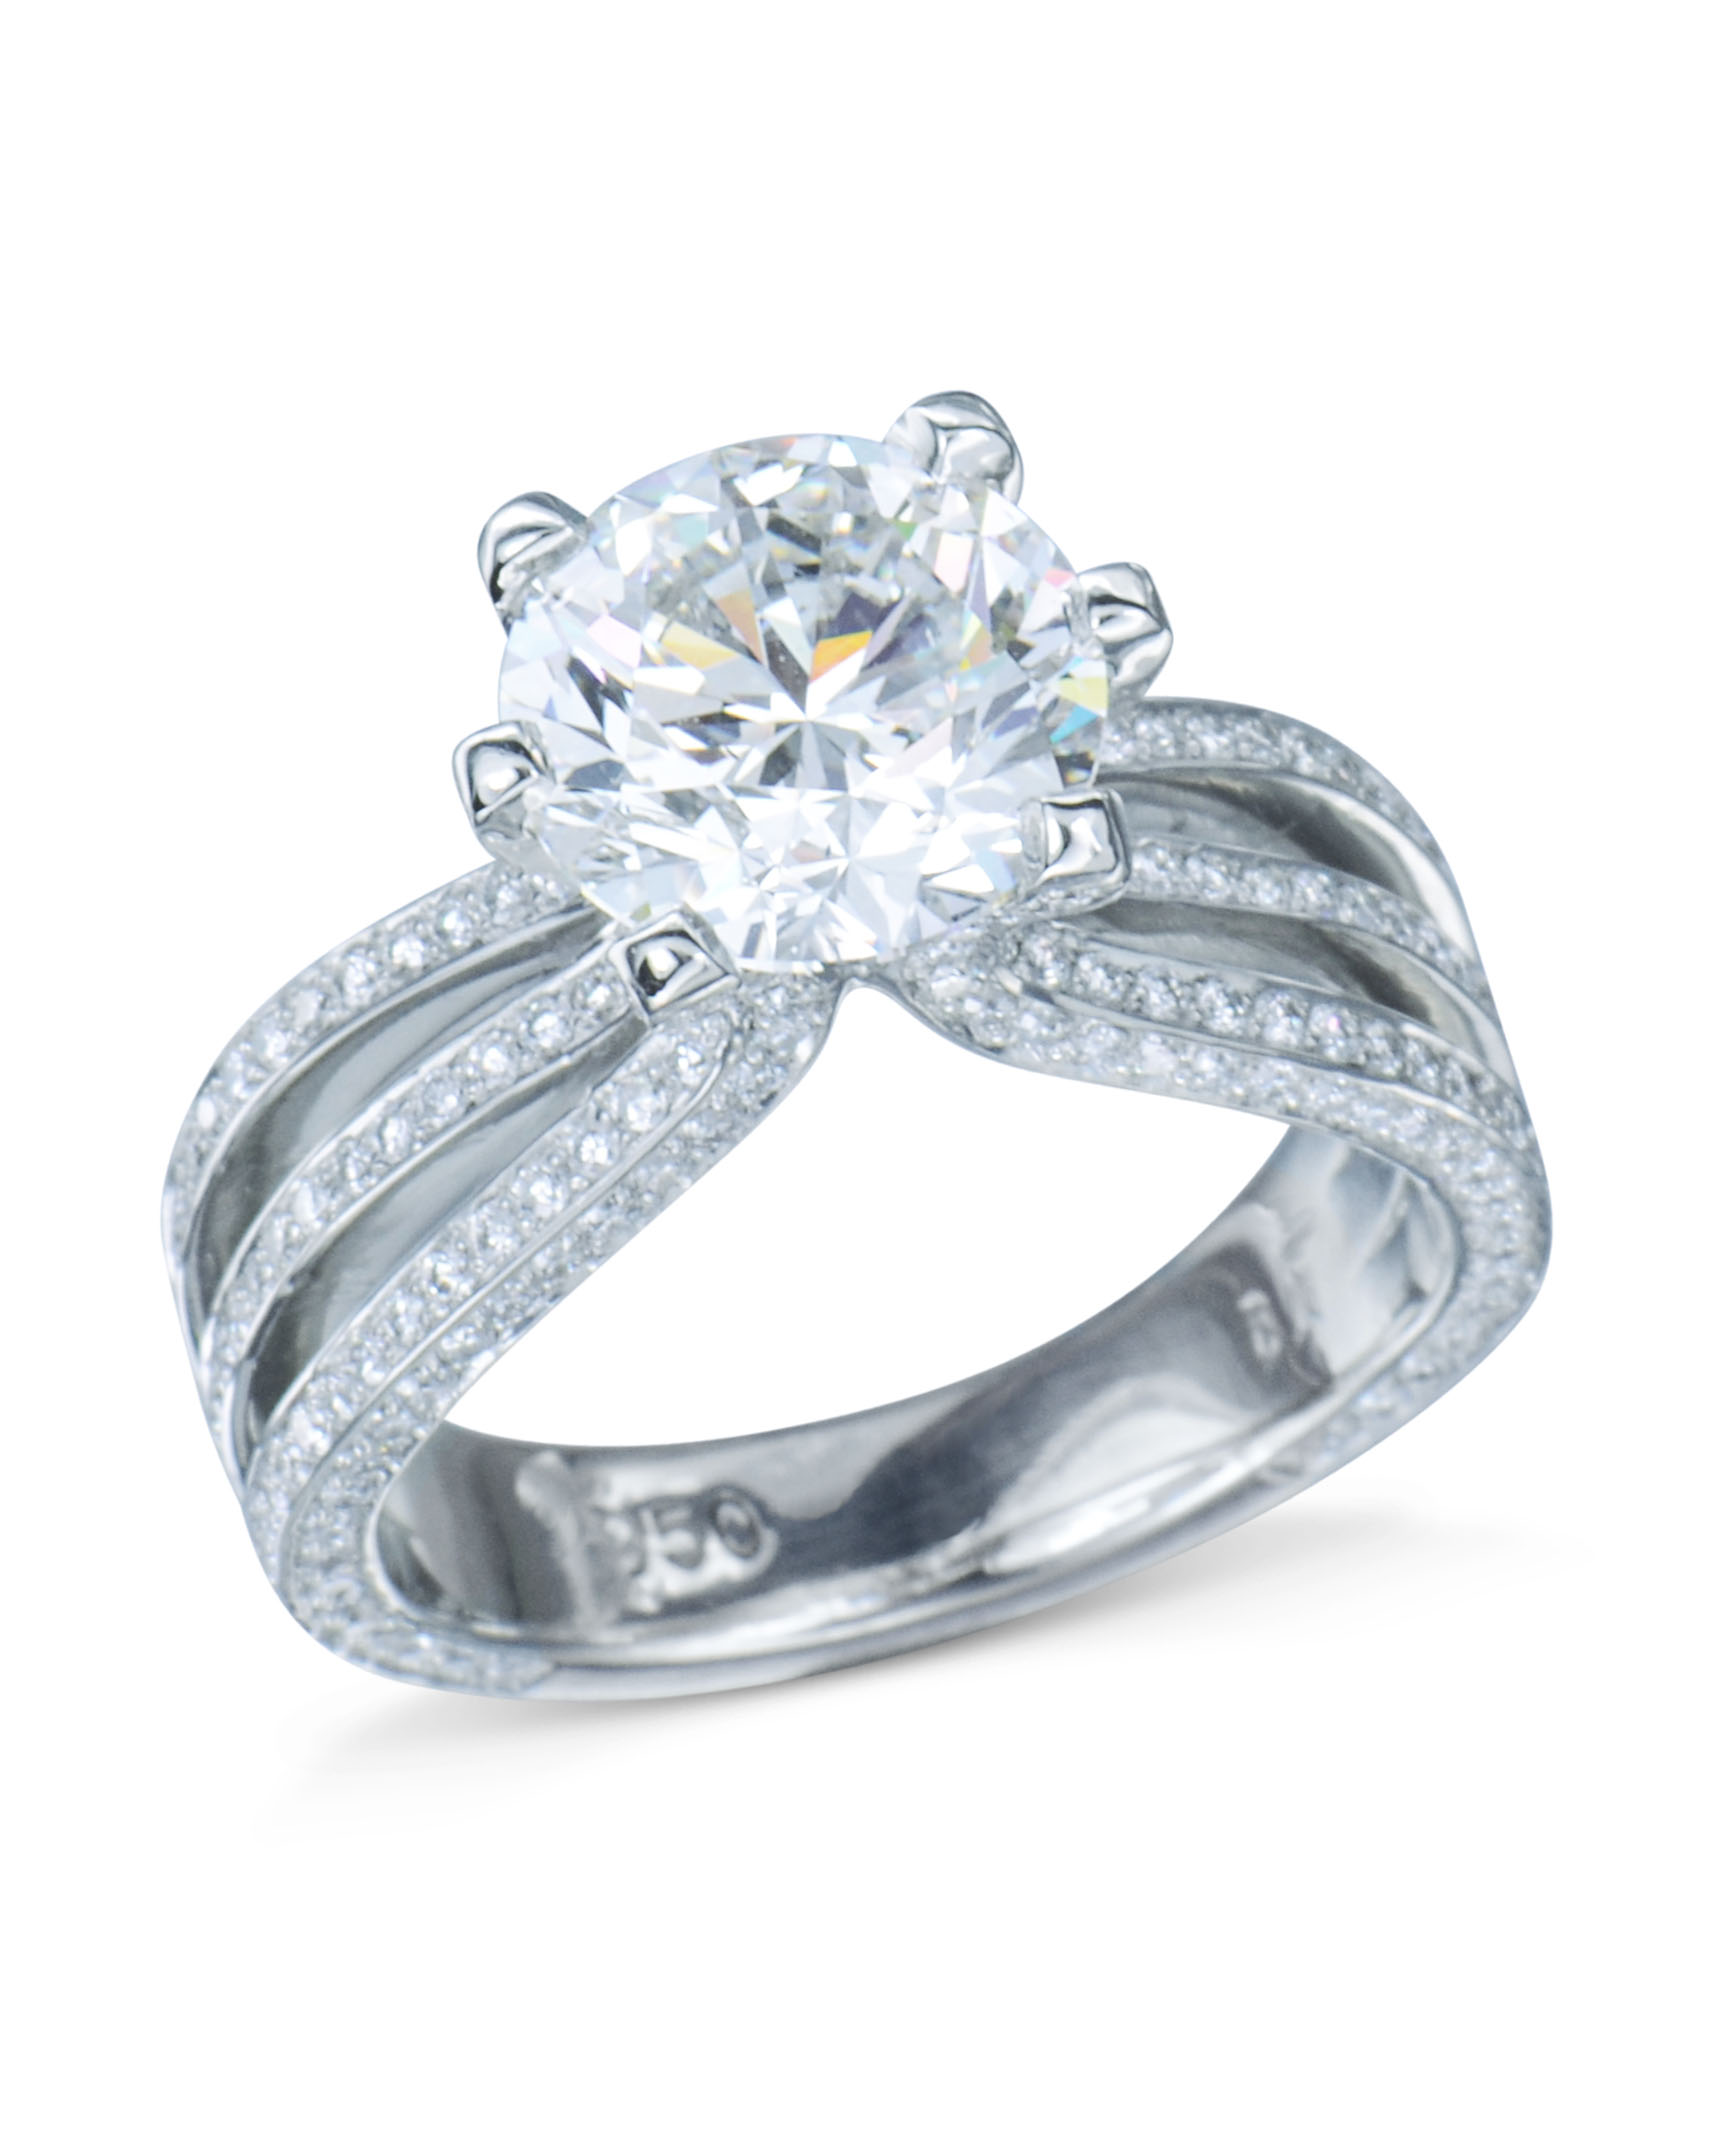 diamond rings engagement complete stone bridal solitaire beautiful band set wedding ring